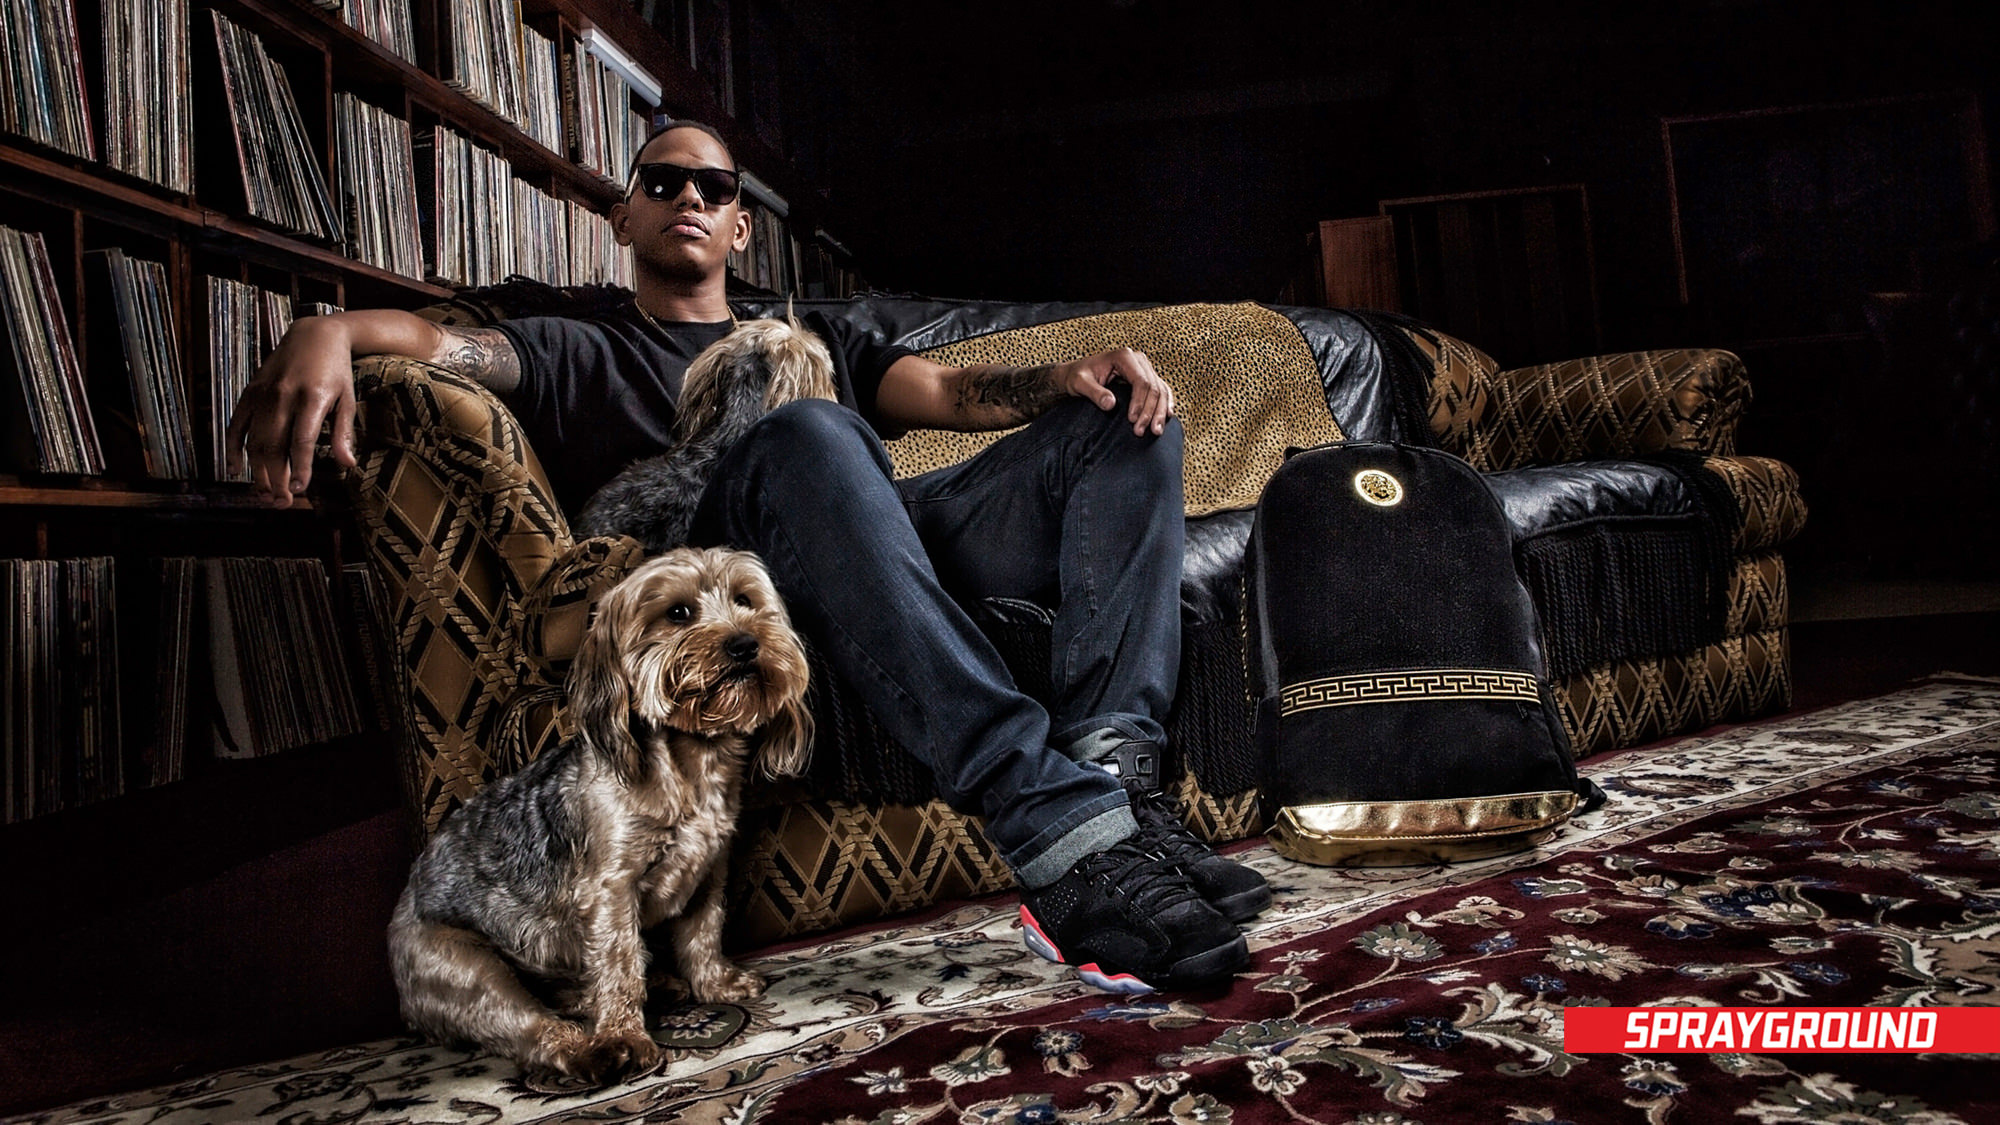 Image of Da L.E.Sin studio for Sprayground's Africa Launch by Michelle Wastie Photography.